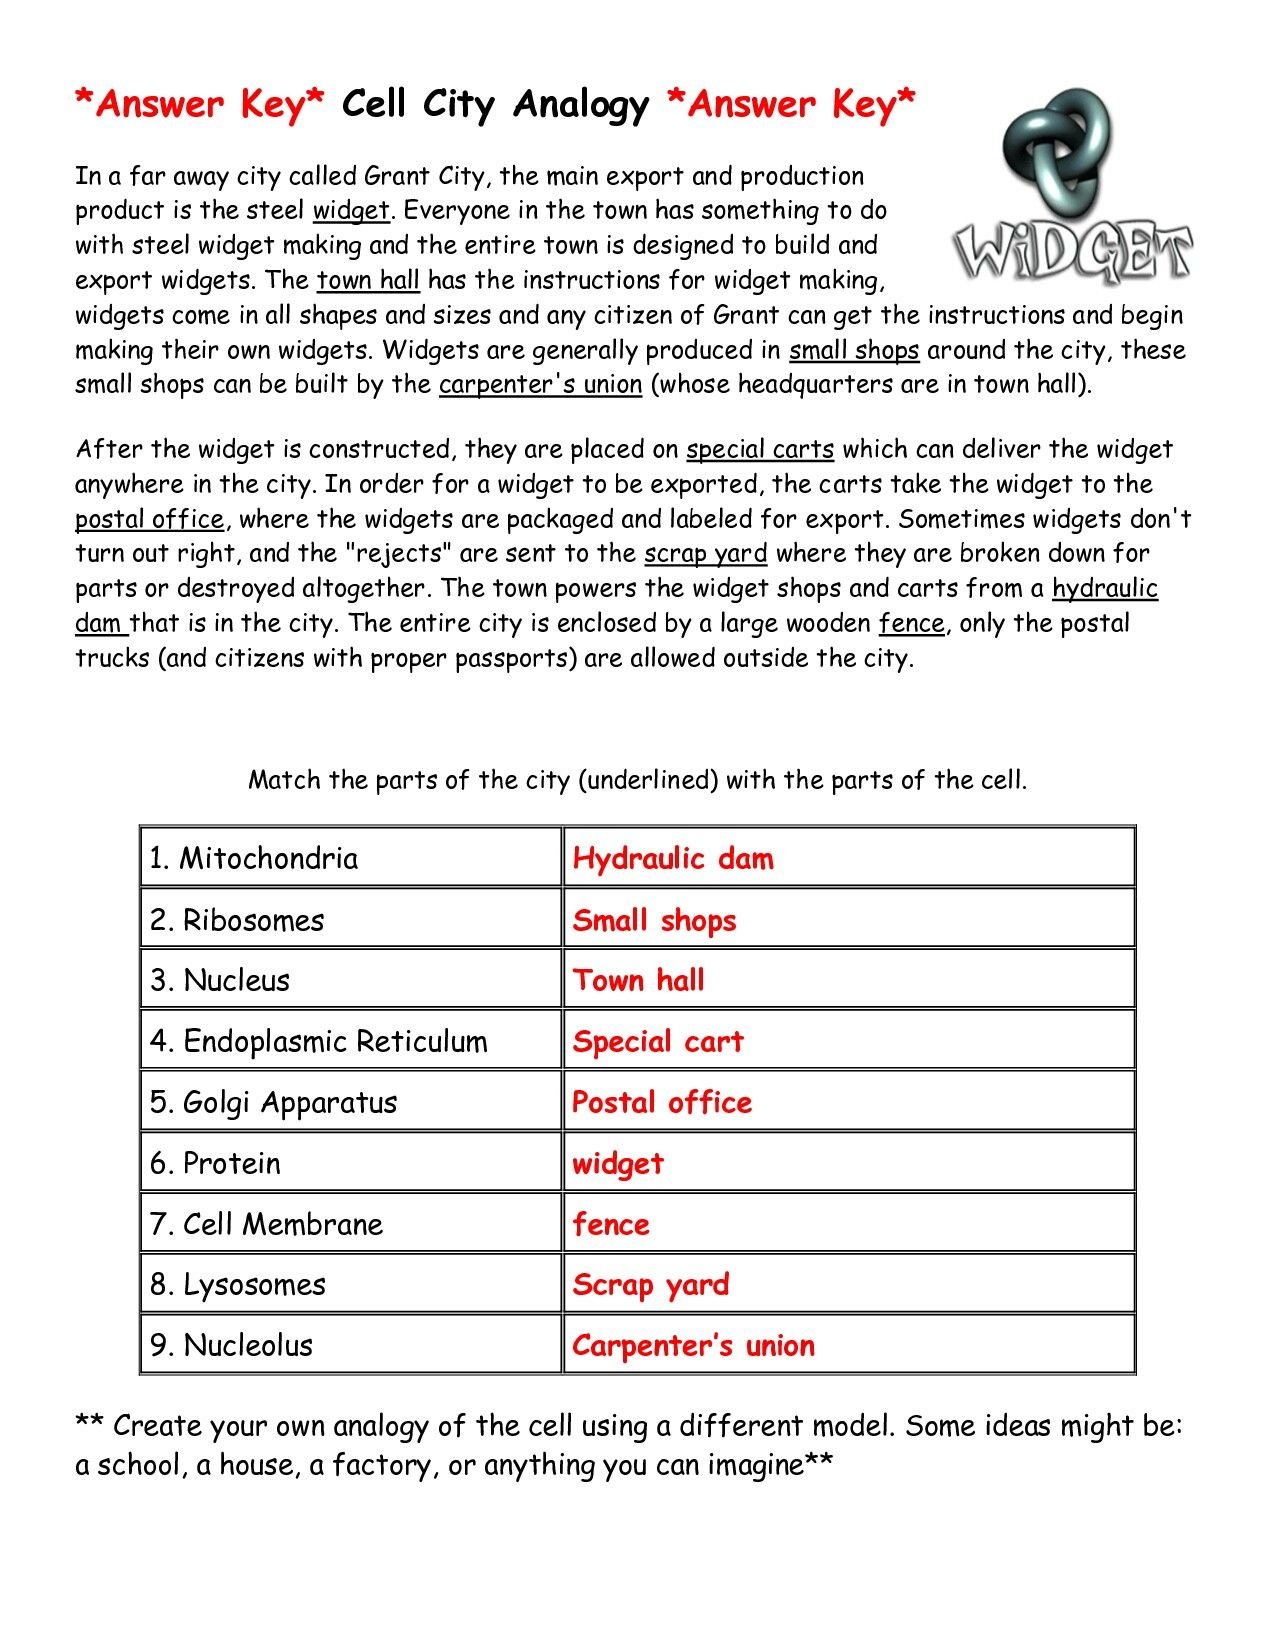 Uncategorized Cell Analogy Worksheet pin by trampakoulas xaralampos on cell city pinterest find this and more trampakoulas